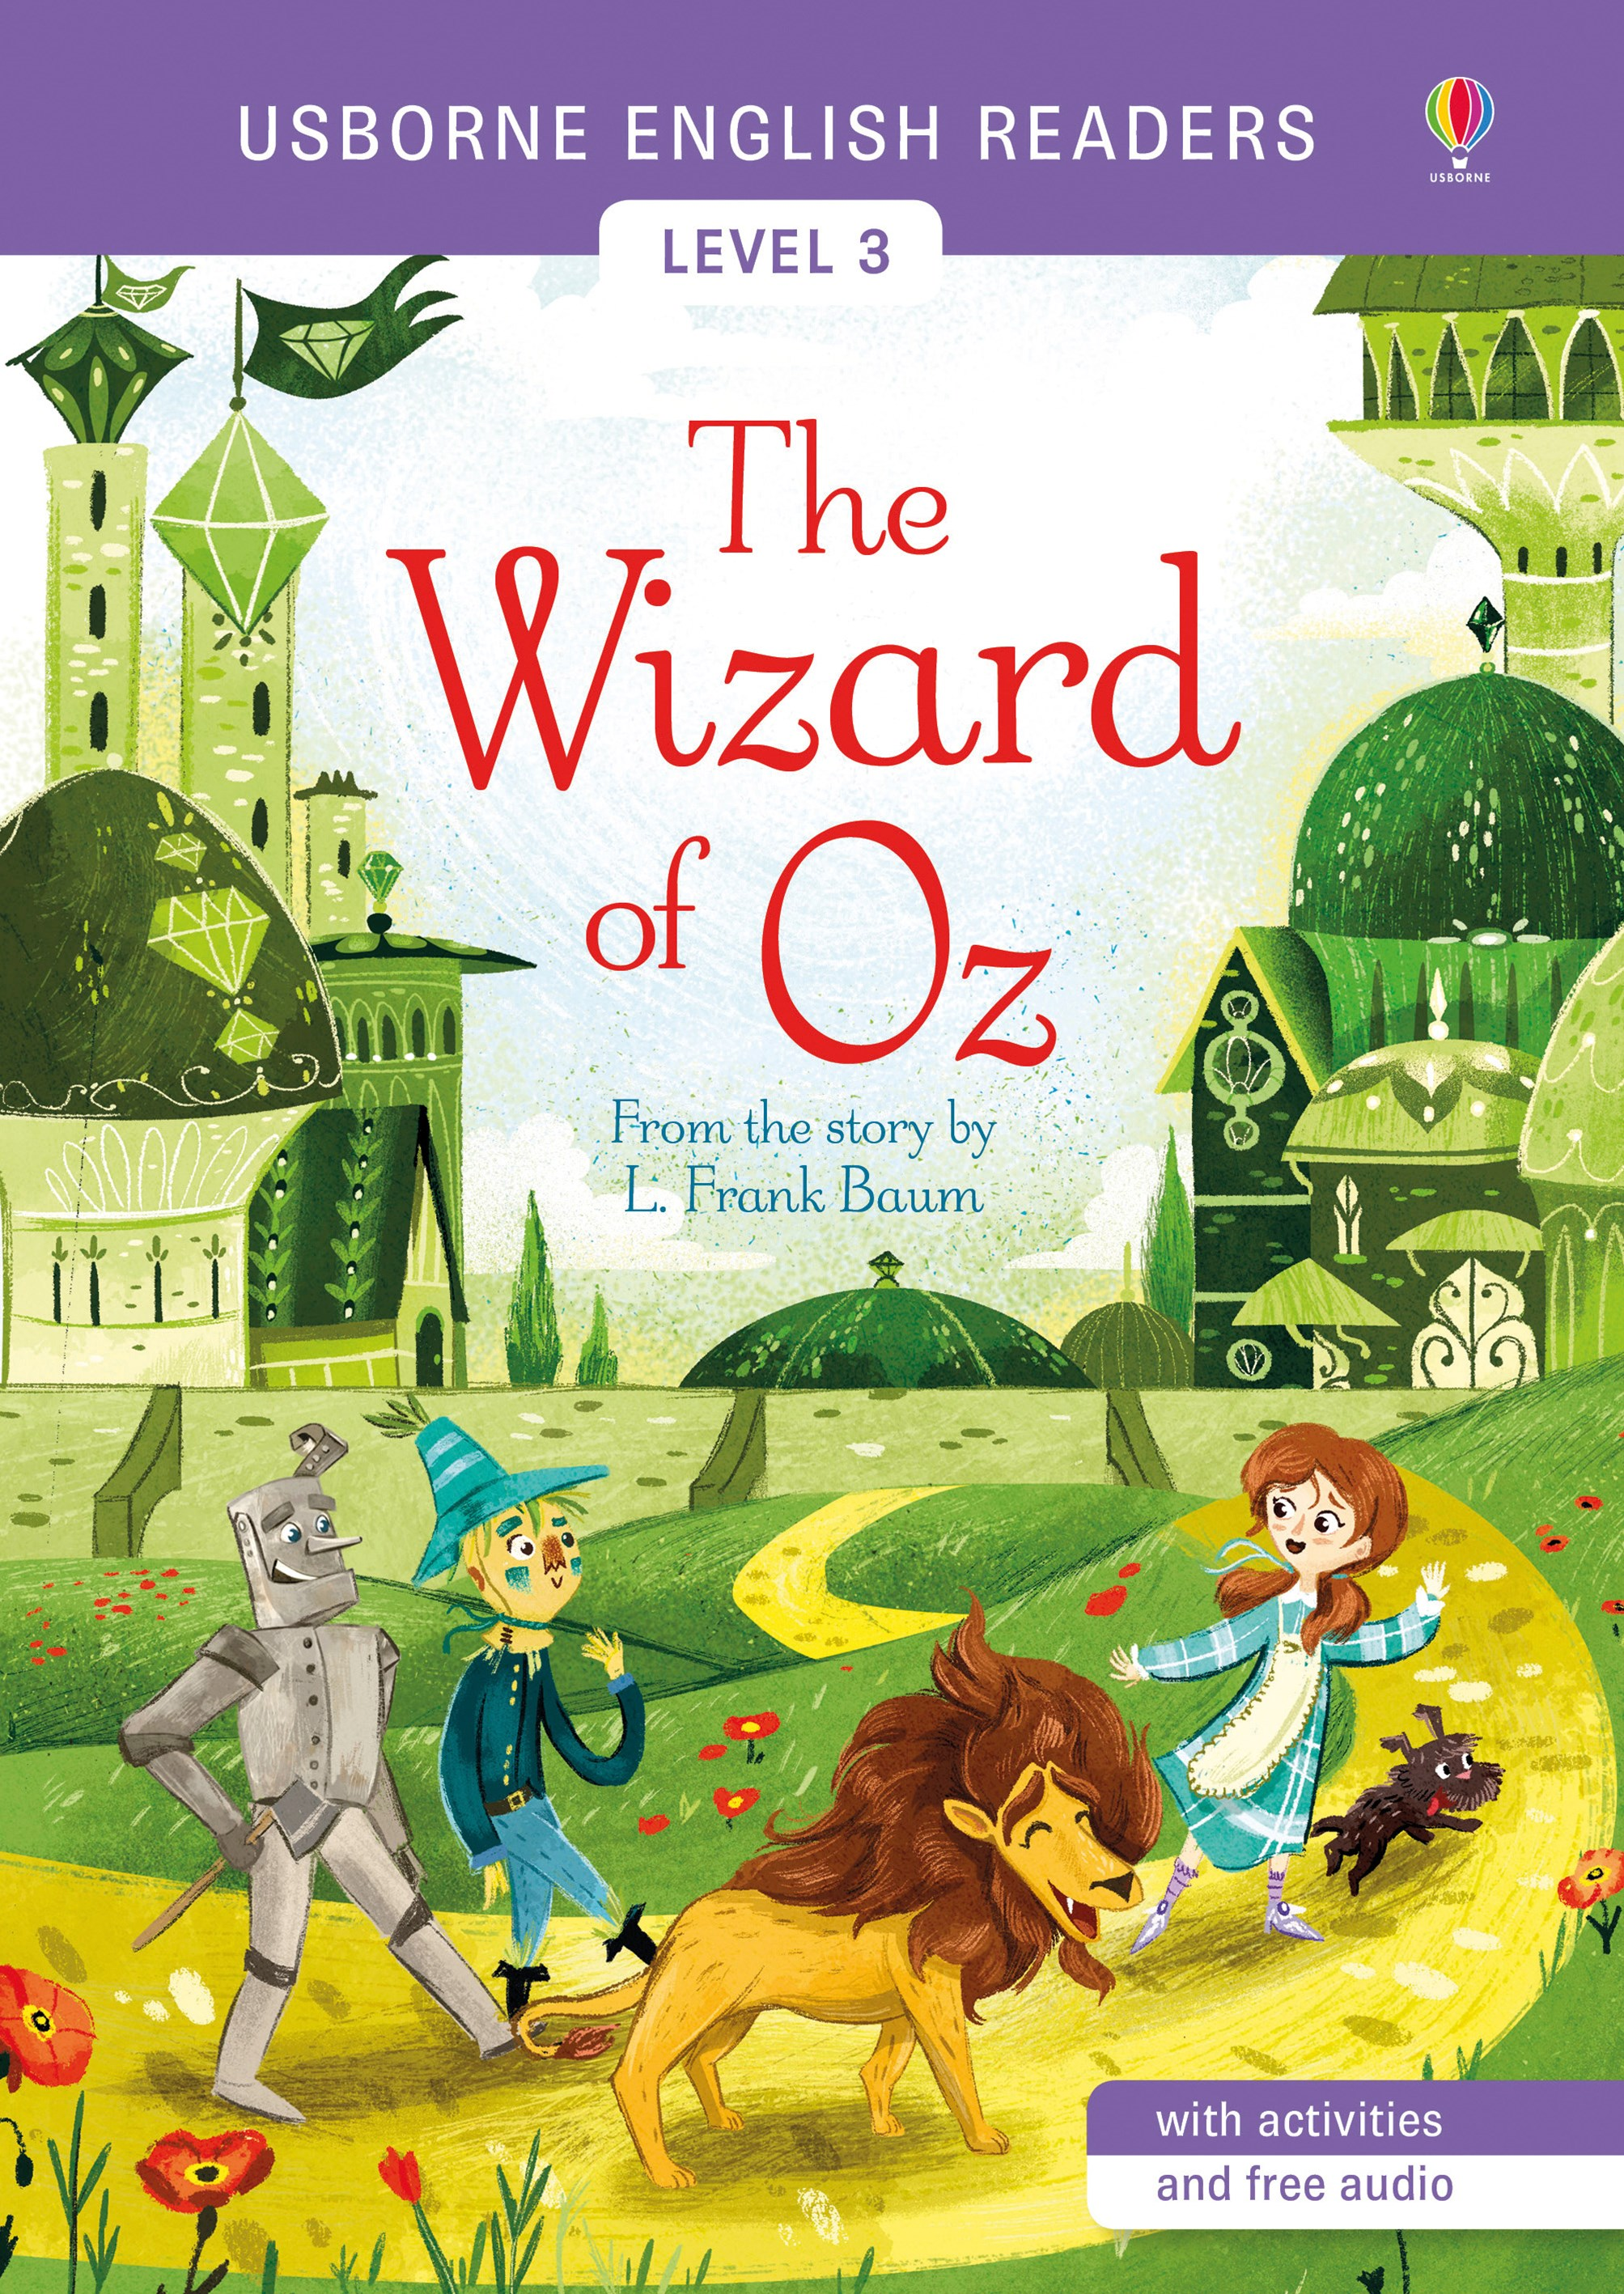 Usborne English Readers: The Wizard of Oz